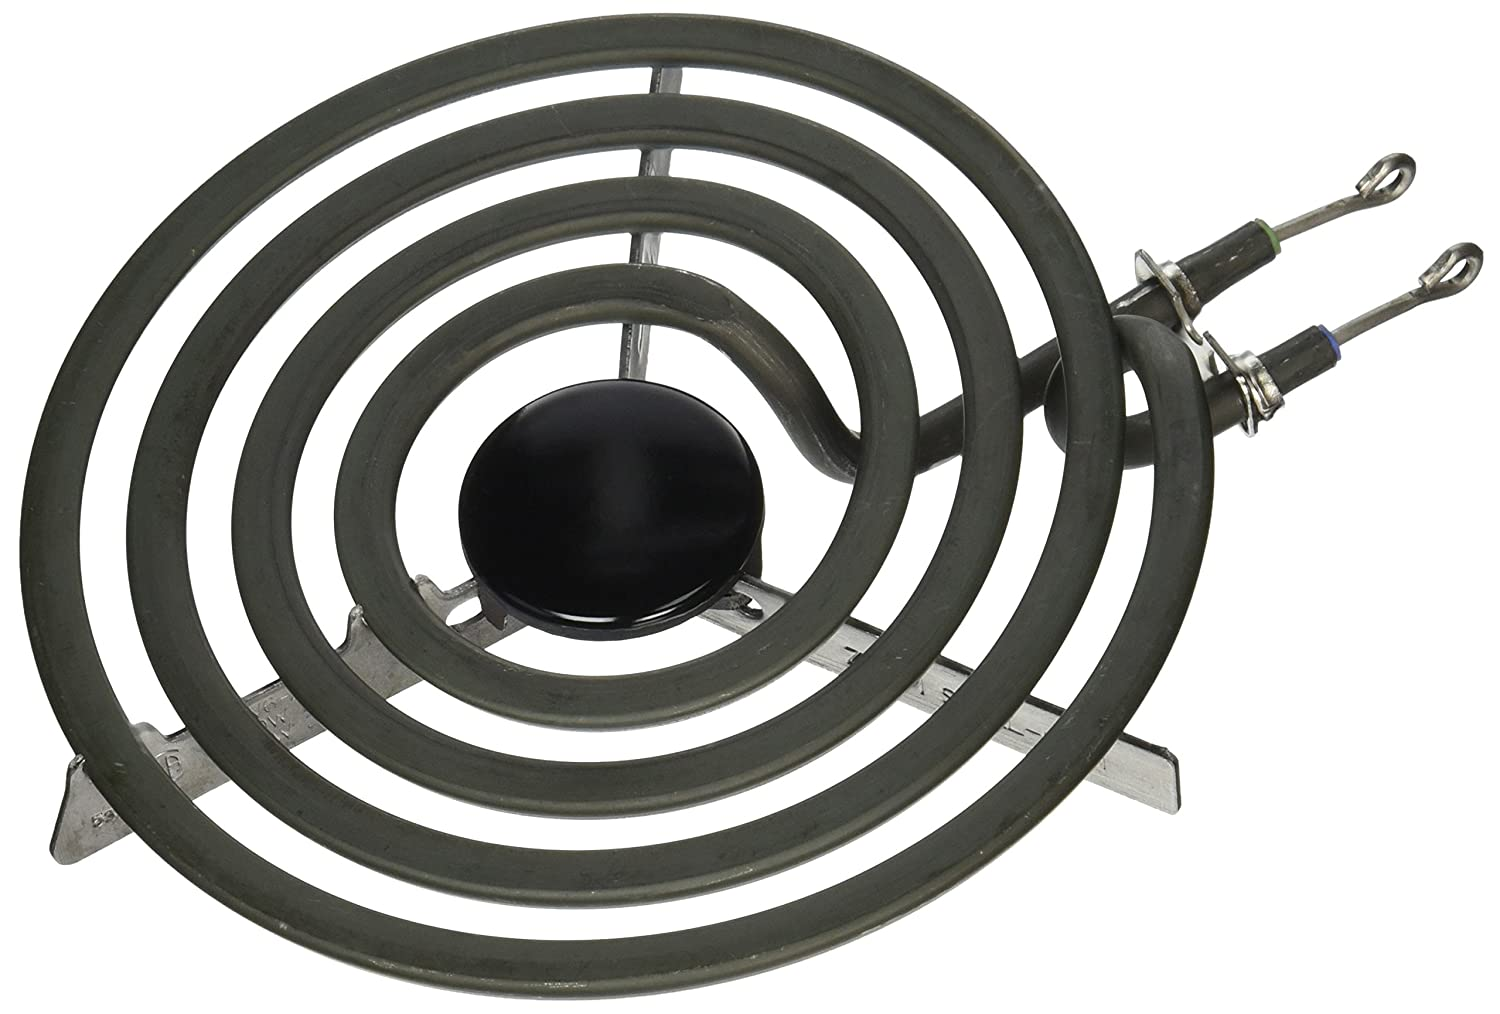 "Whirlpool 6"" Range Cooktop Stove Replacement Surface Burner Heating Element 660532"